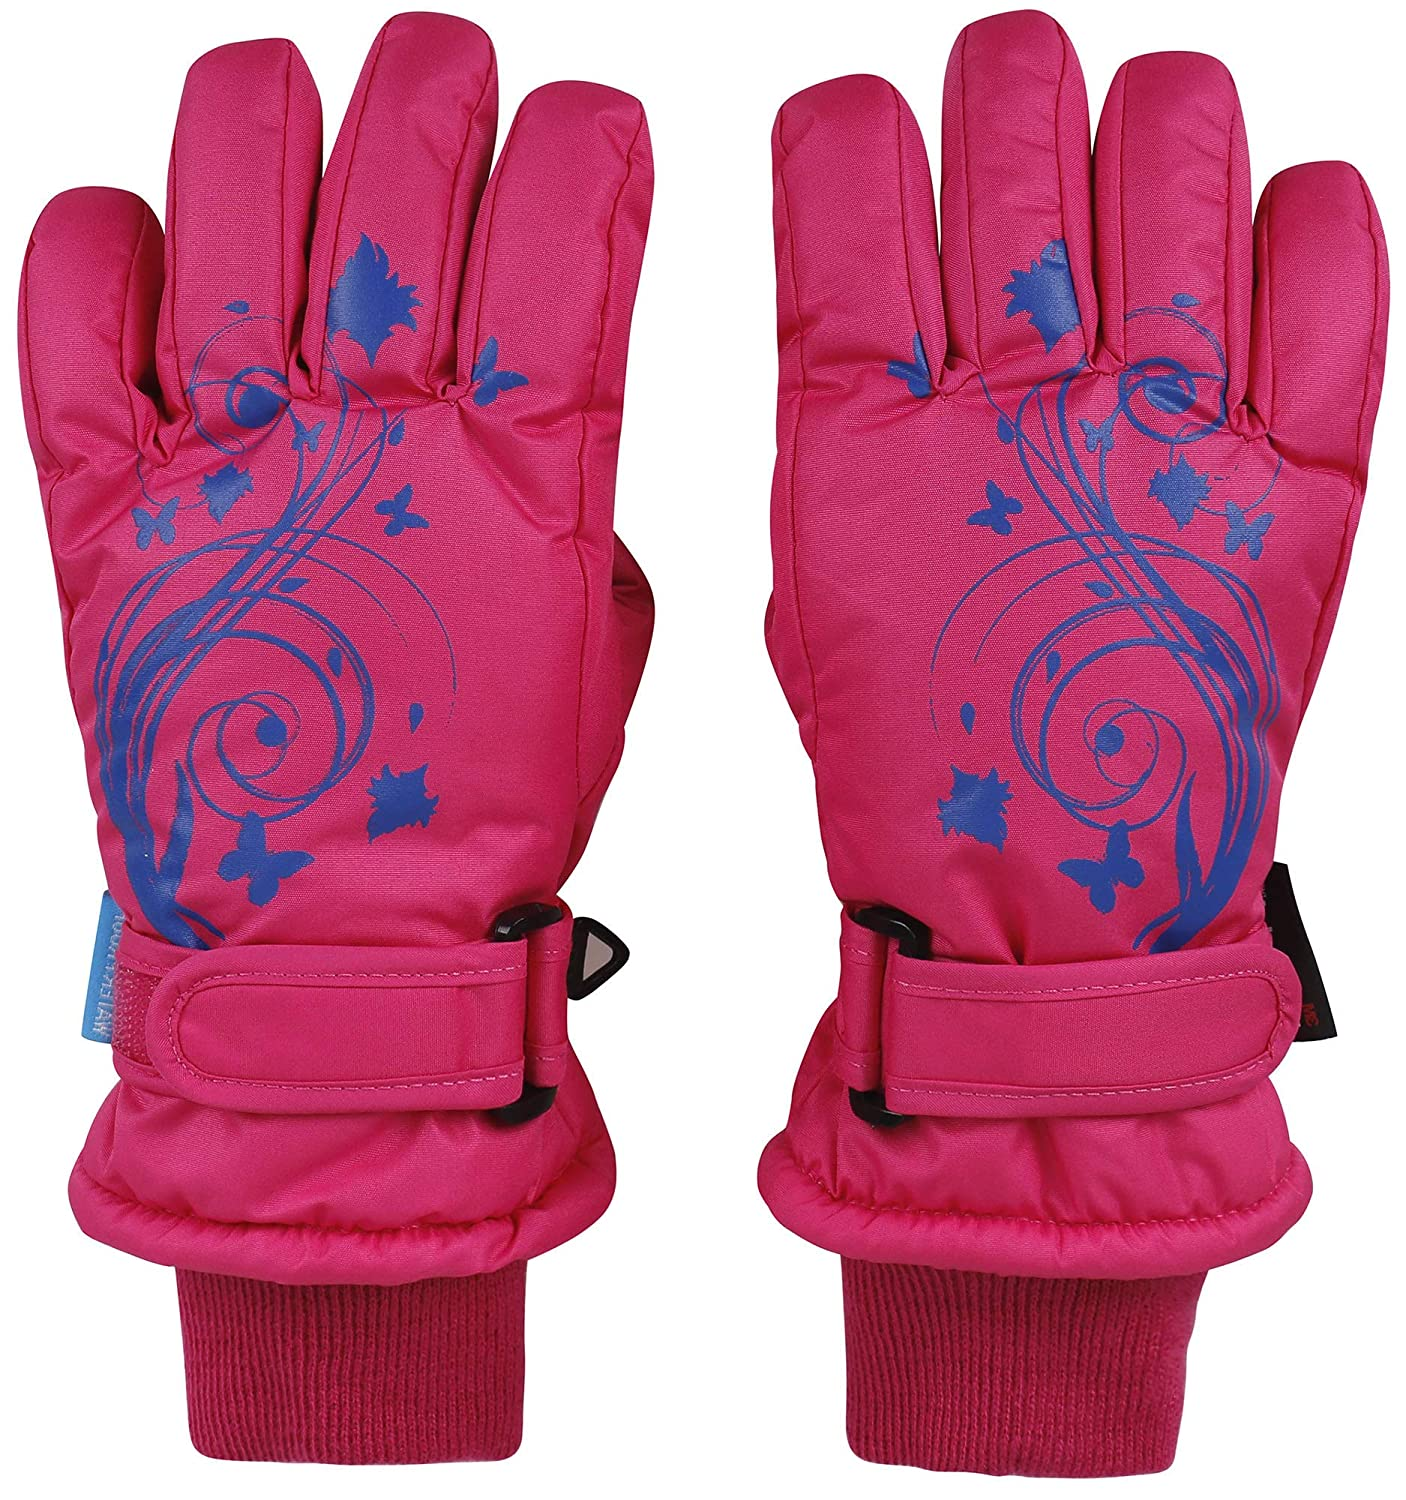 AbbyLexi Kids Boy's & Girl's Winter Thinsulate Lined Ski & Snowboard Gloves